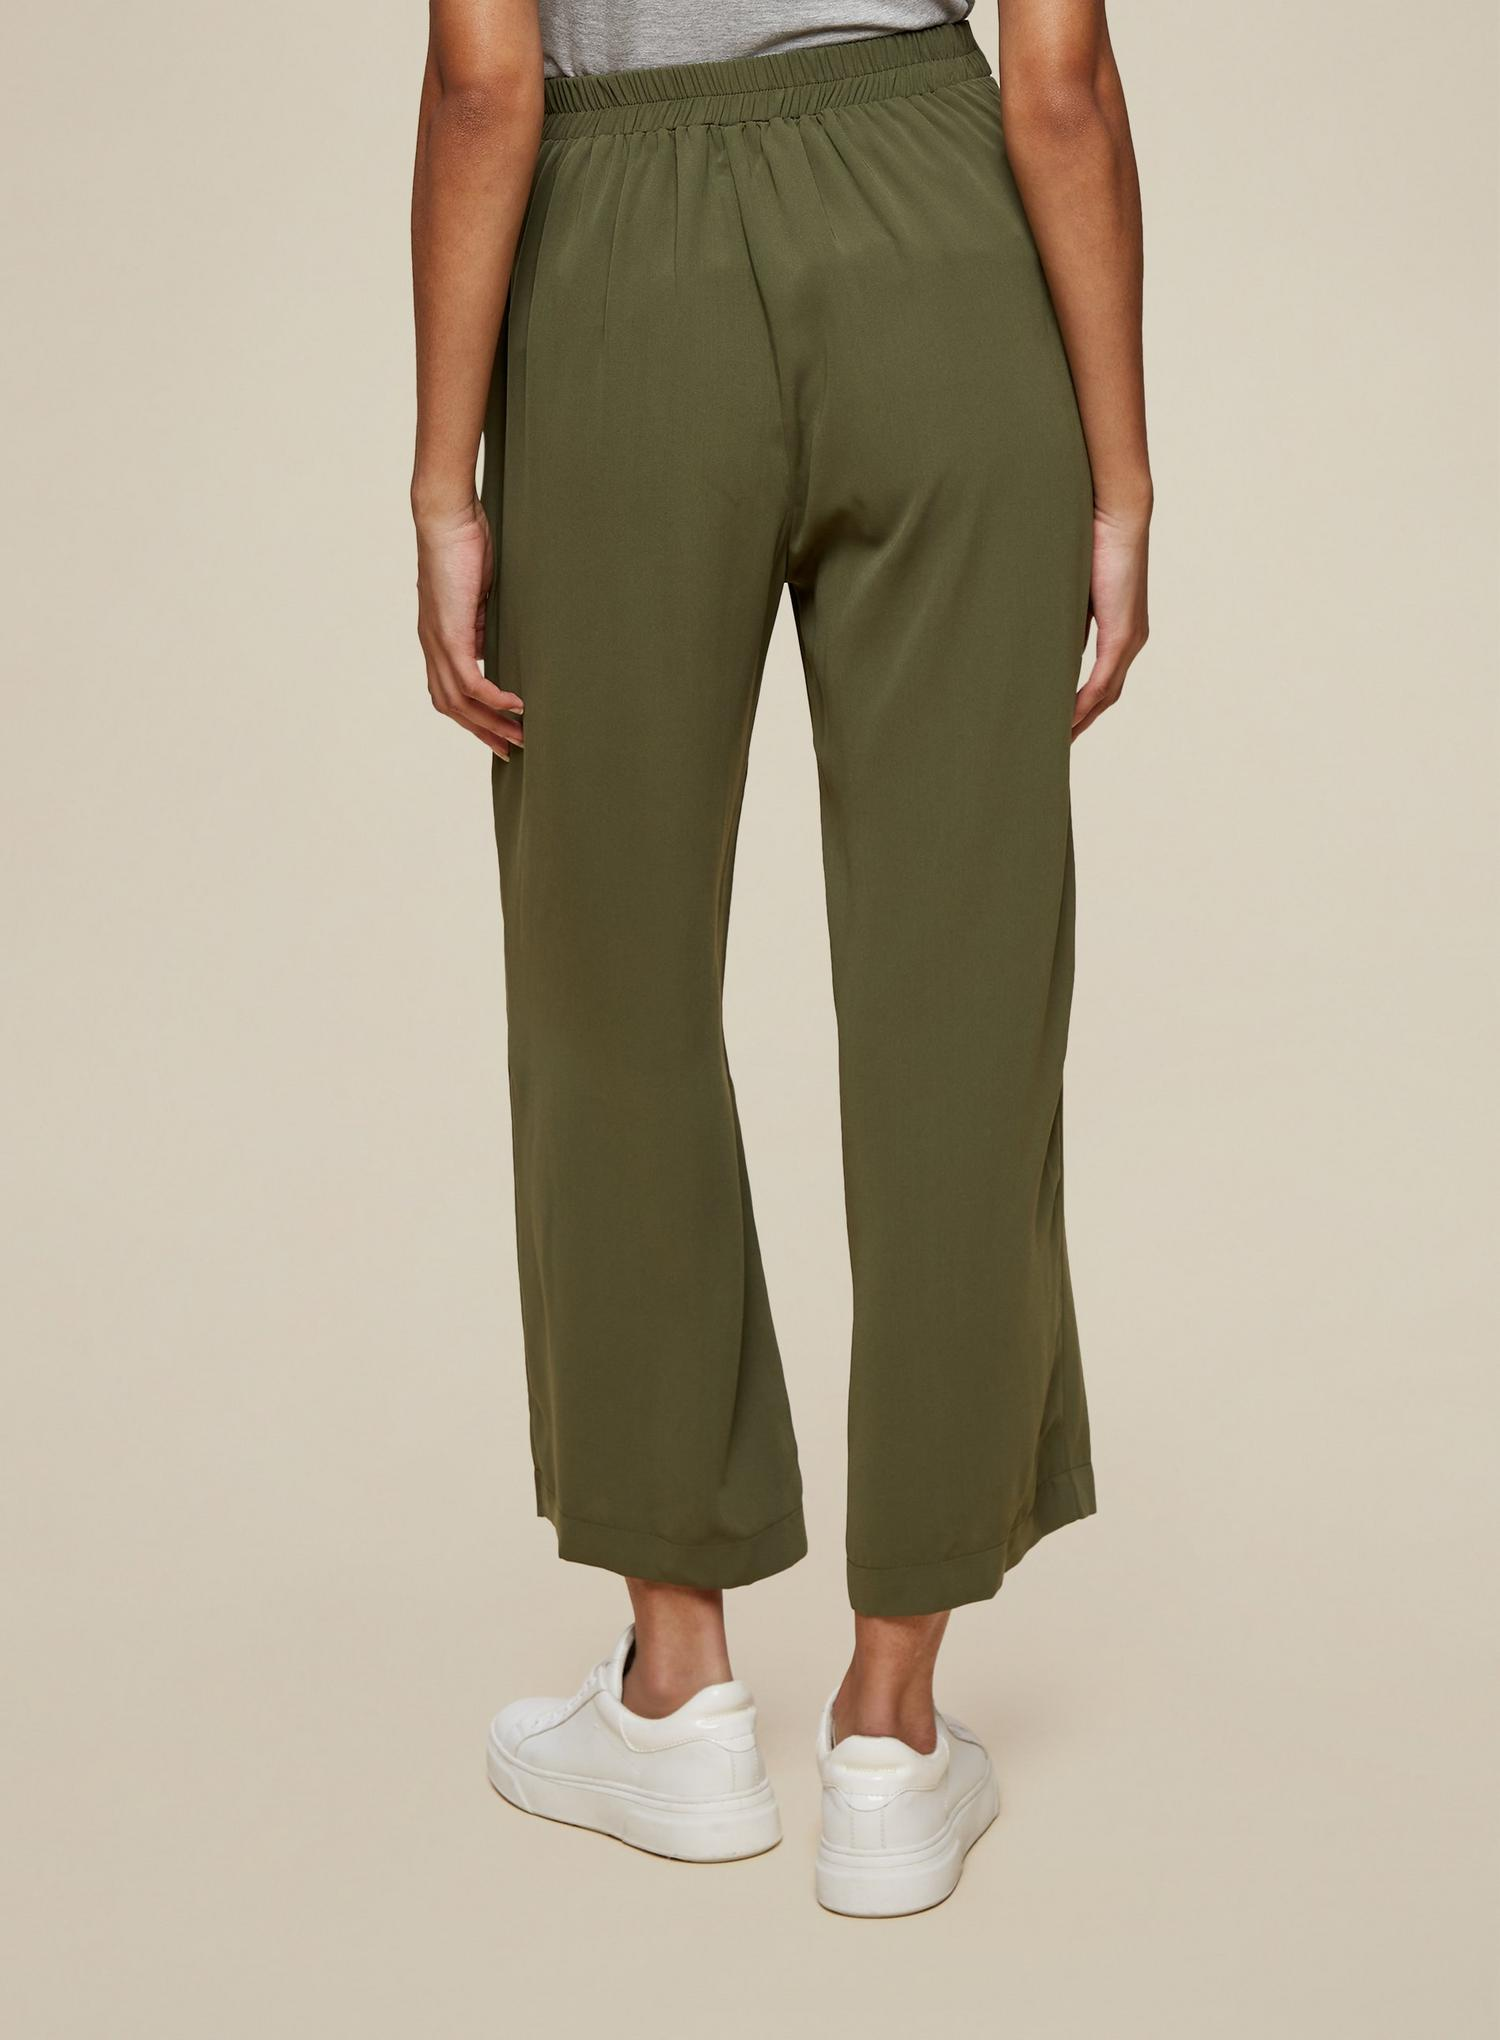 130 Tall Khaki Cropped Palazzo Trousers image number 2